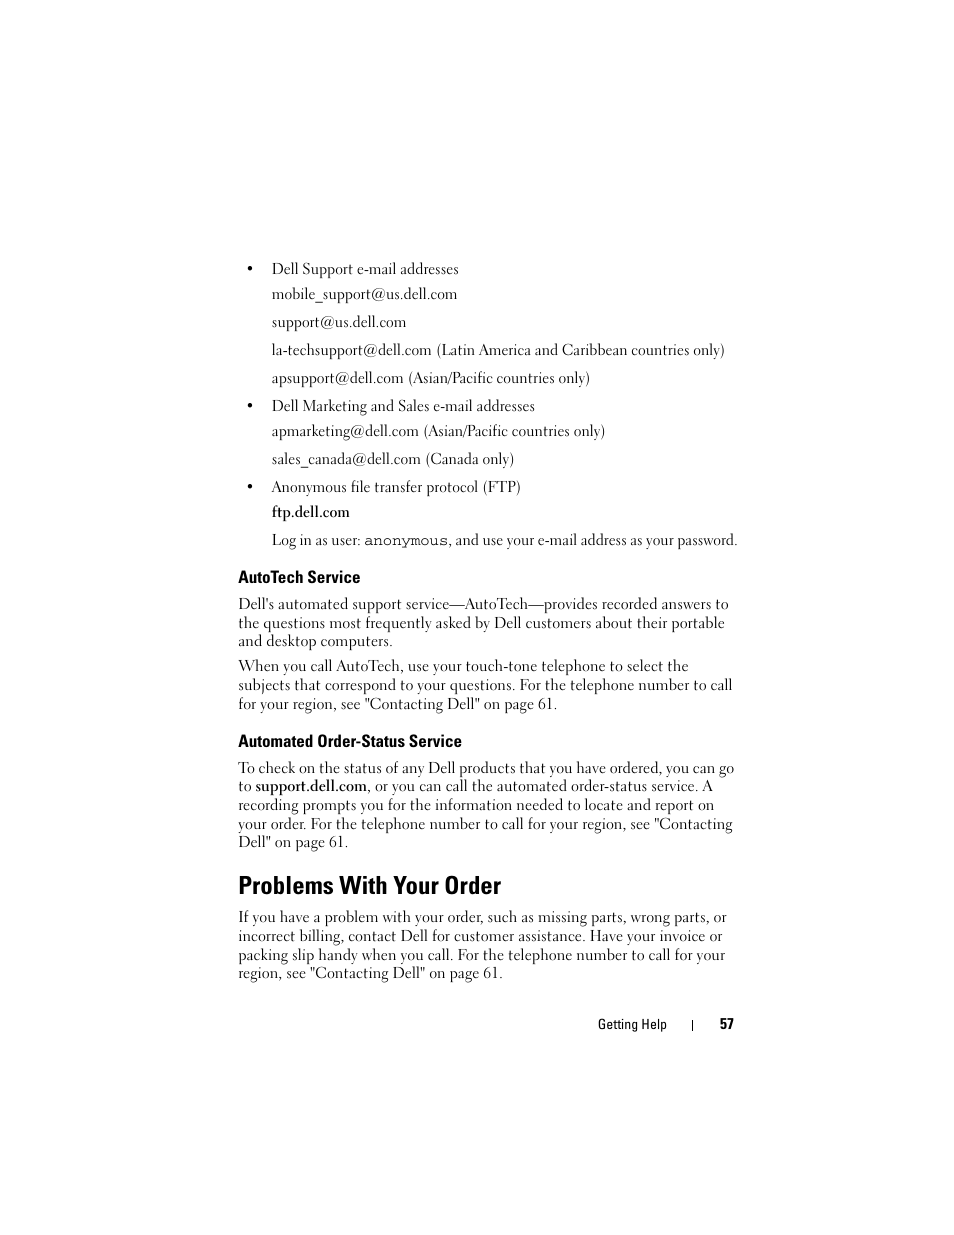 Problems with your order   Dell Latitude E5500 User Manual   Page 57